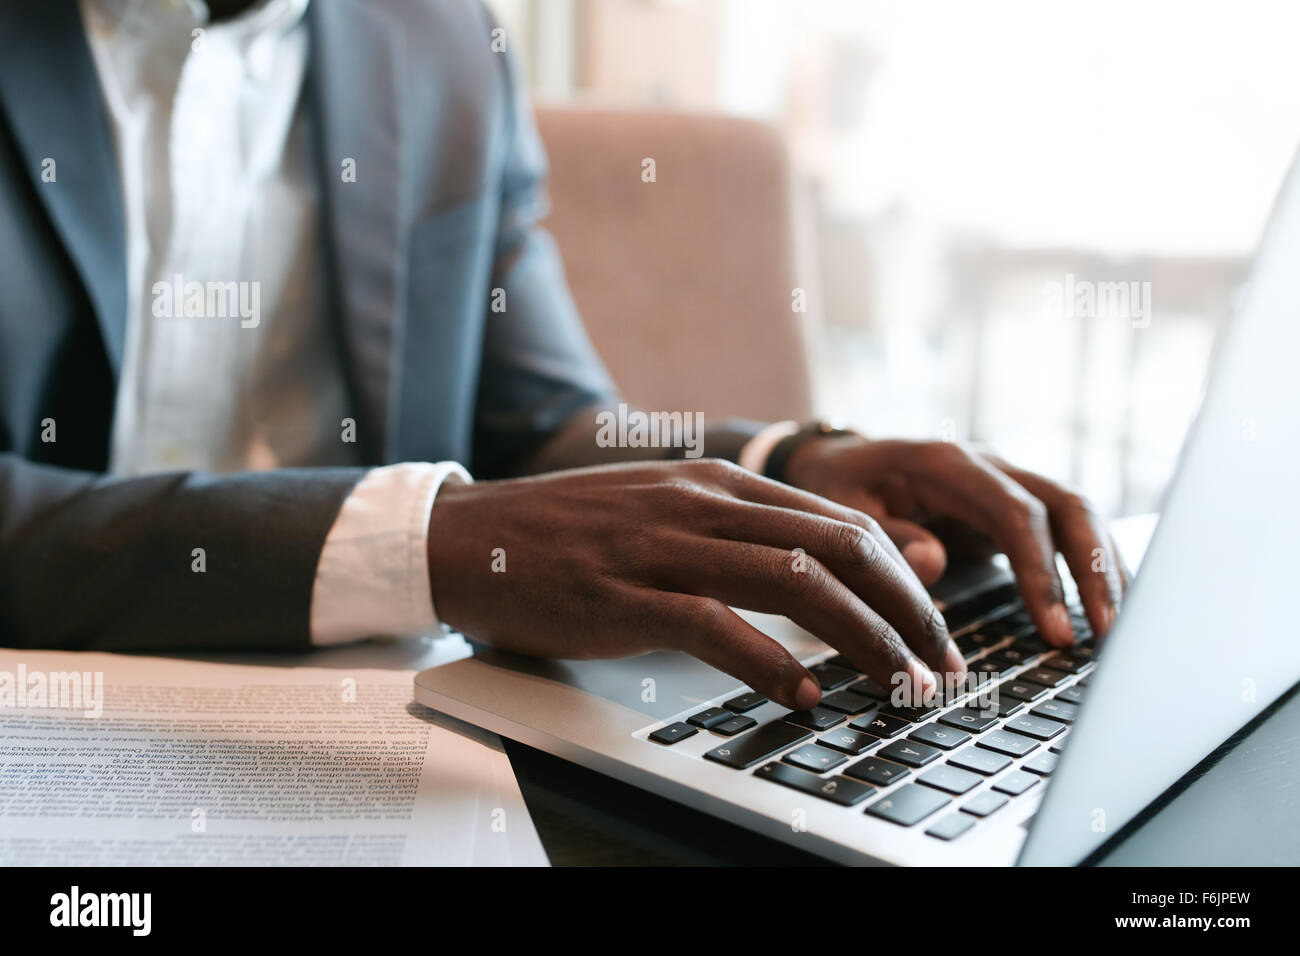 Businessman working on laptop avec quelques documents sur table. Gros plan sur les mains de la saisie sur clavier Photo Stock